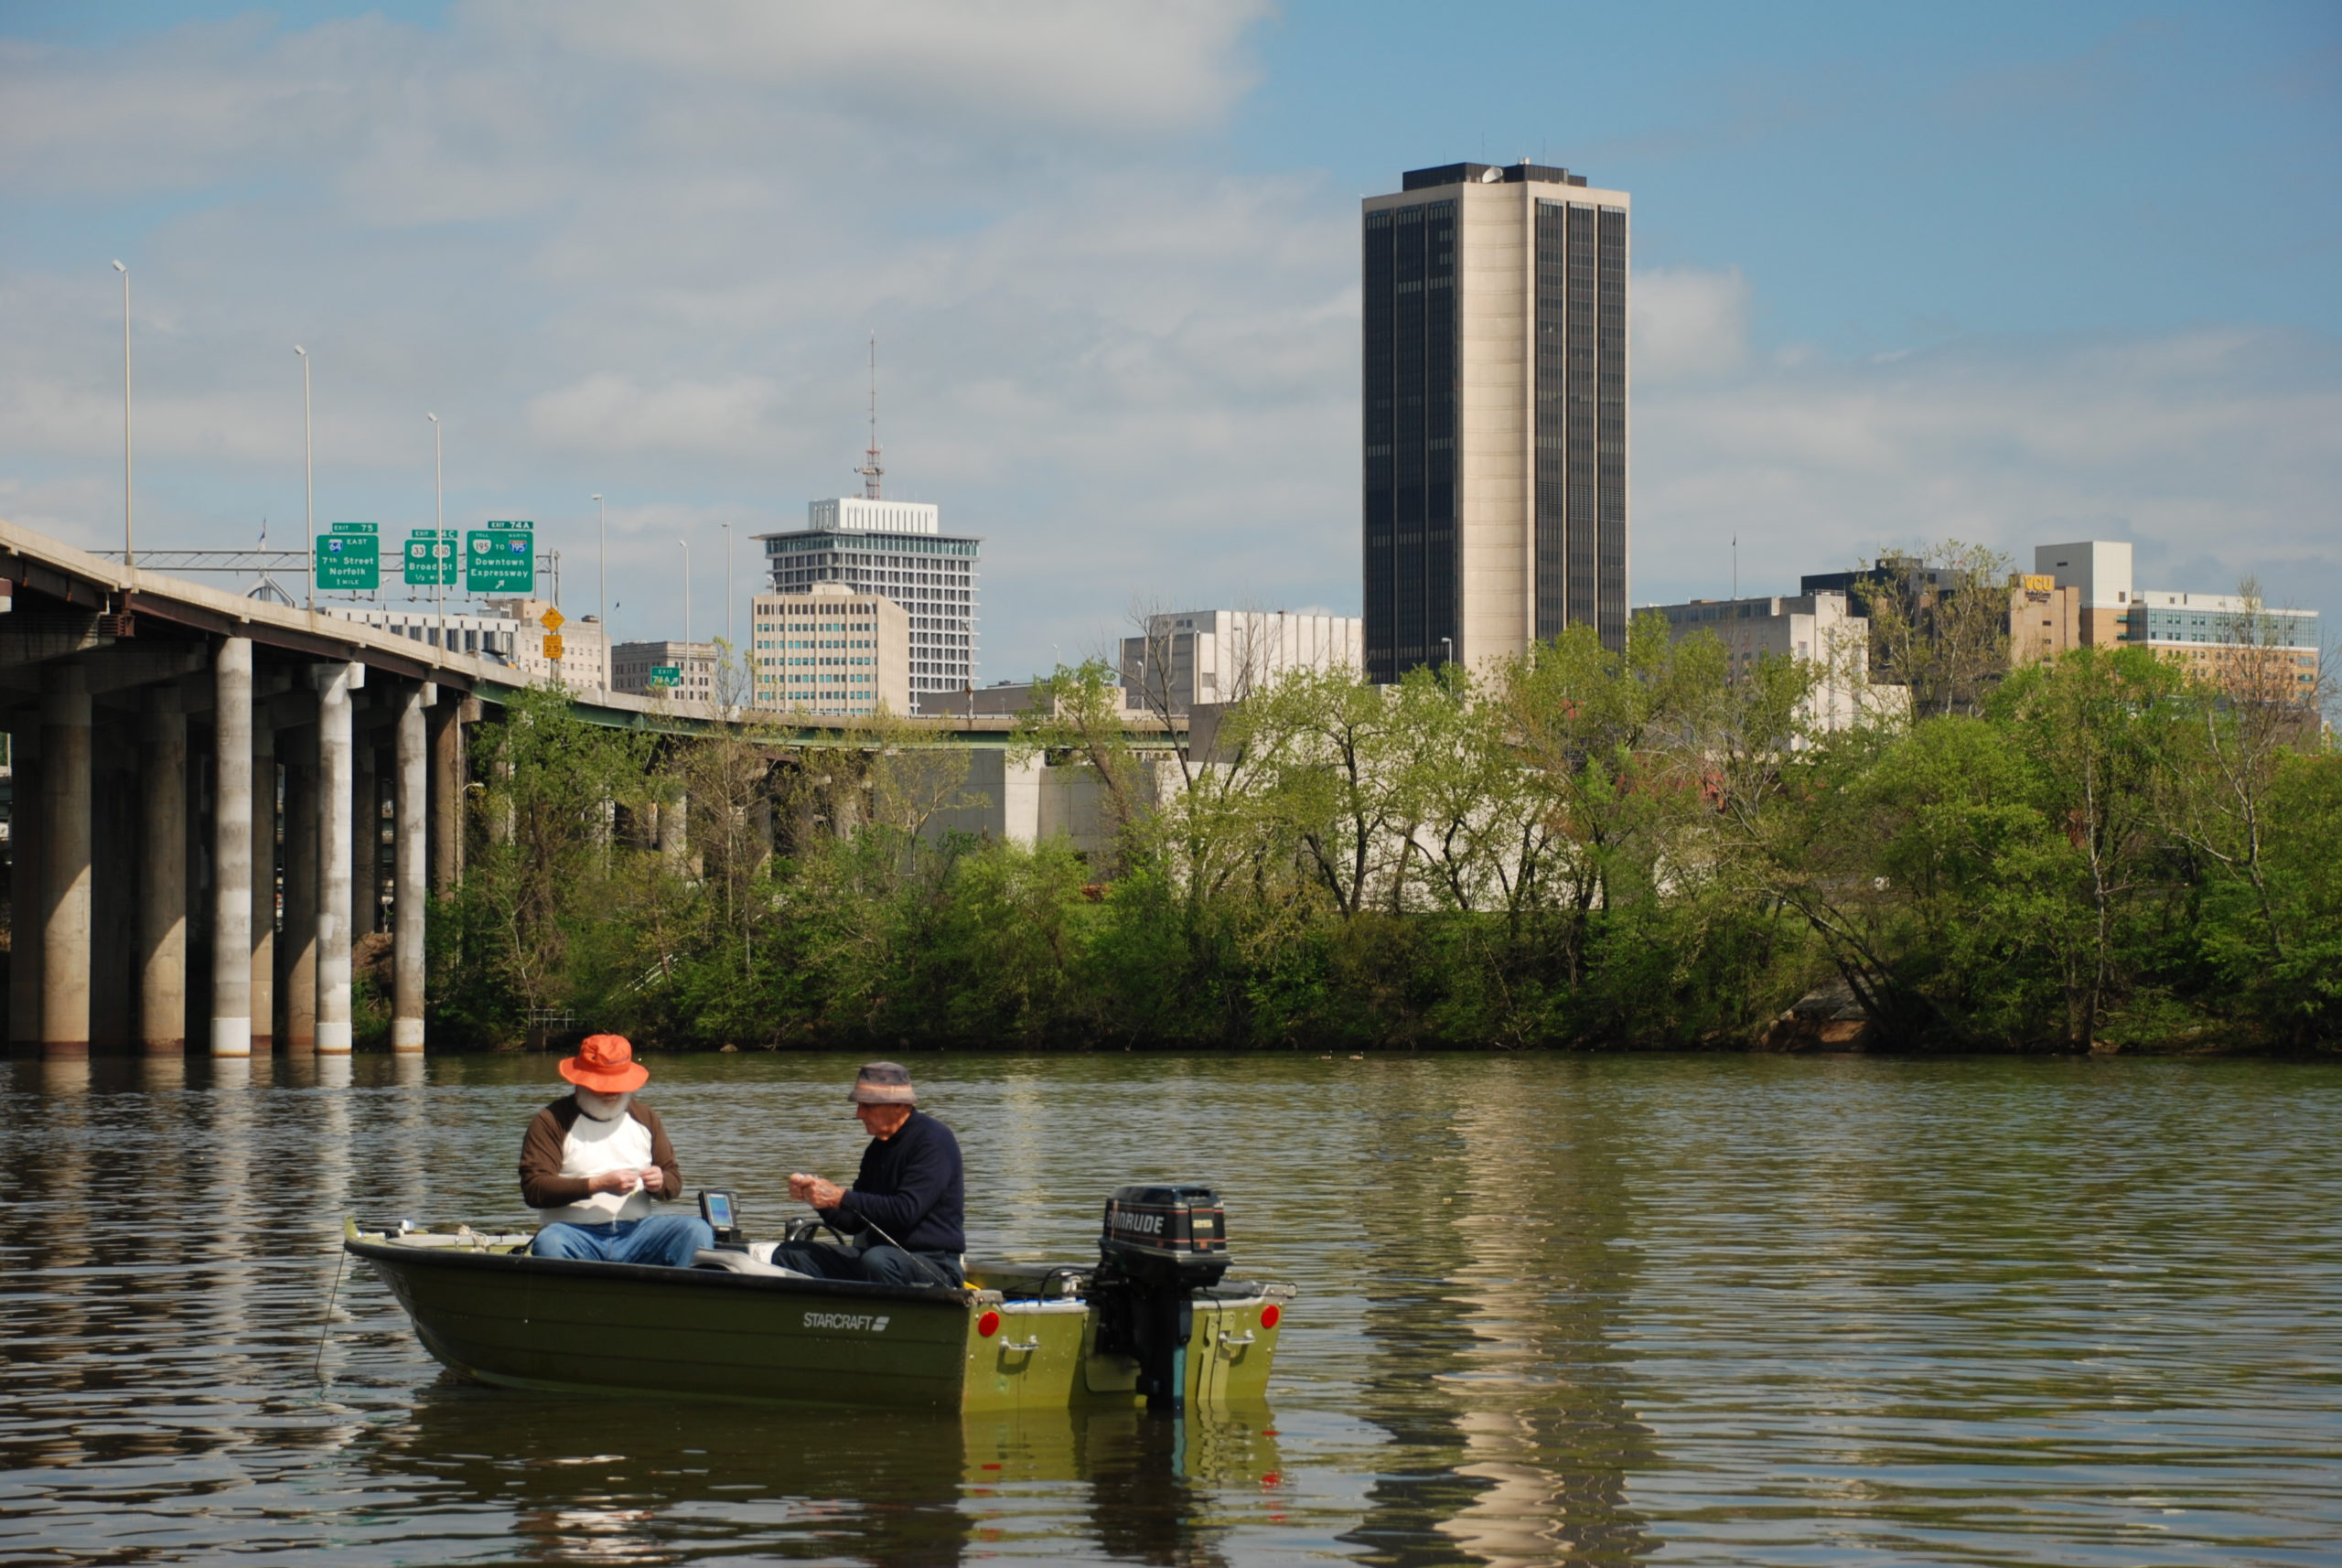 Riverrock Announces 'Monsters of the James' Kayak Fishing Tournament for 2020